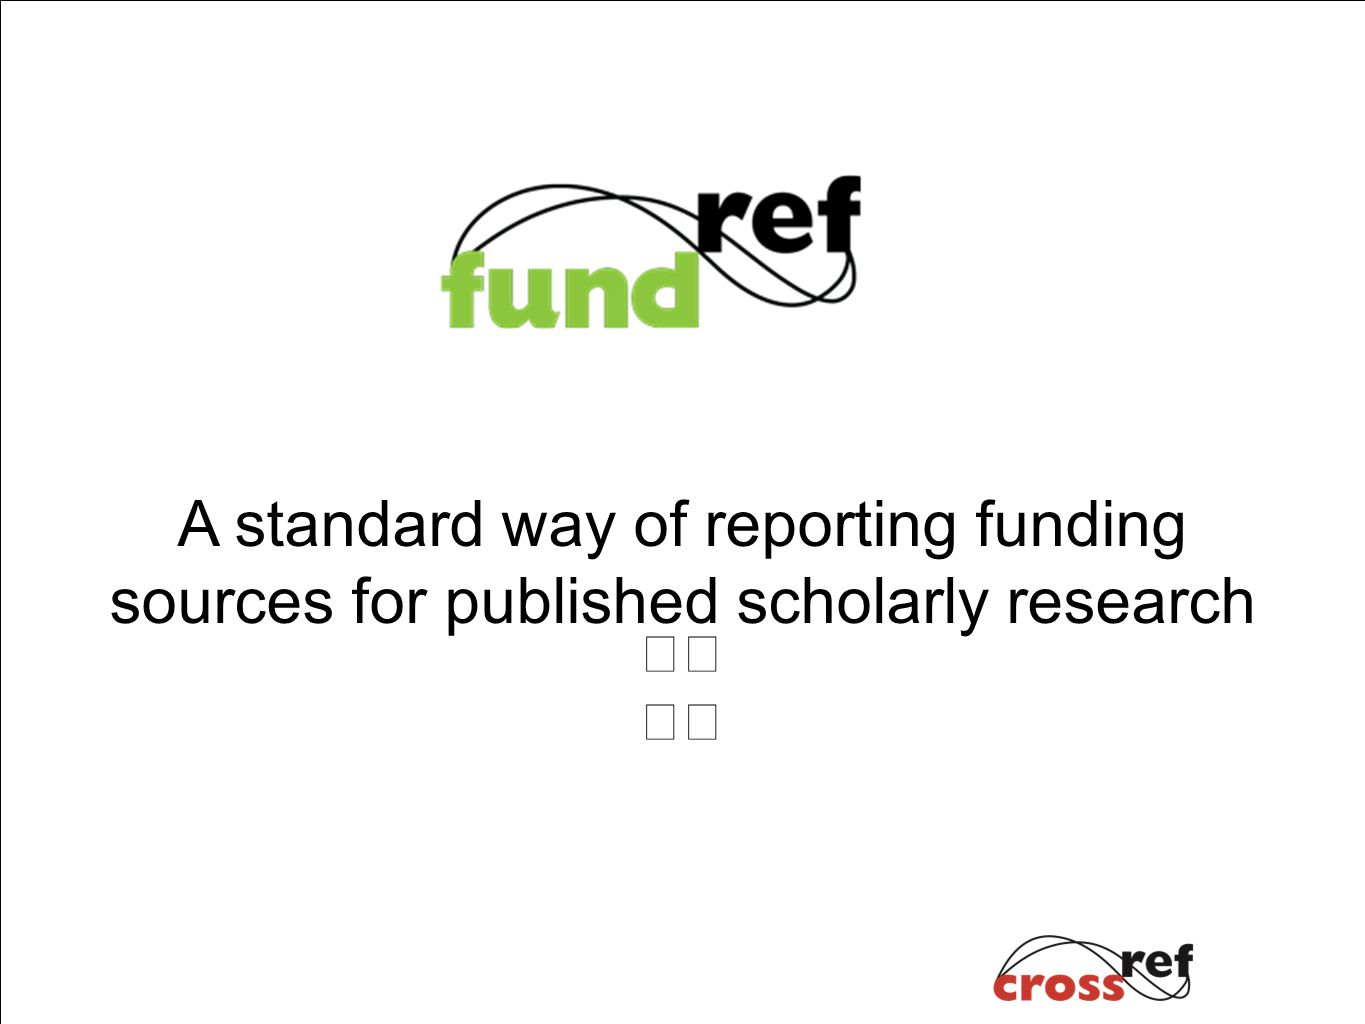 A standard way of reporting funding sources for published scholarly research